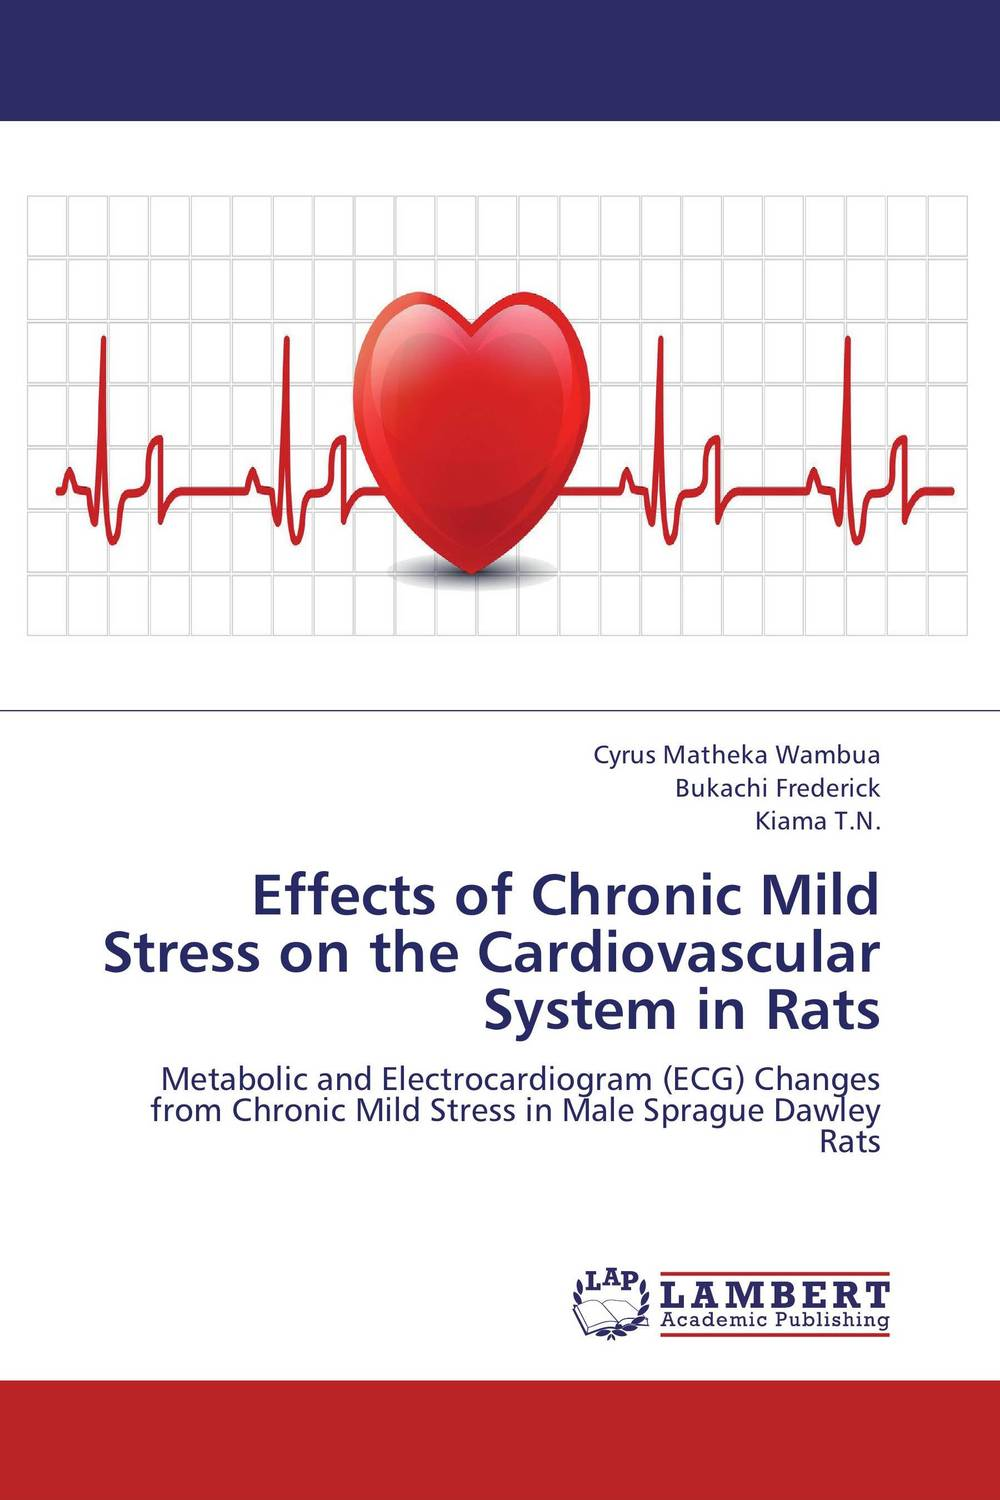 Effects of Chronic Mild Stress on the Cardiovascular System in Rats